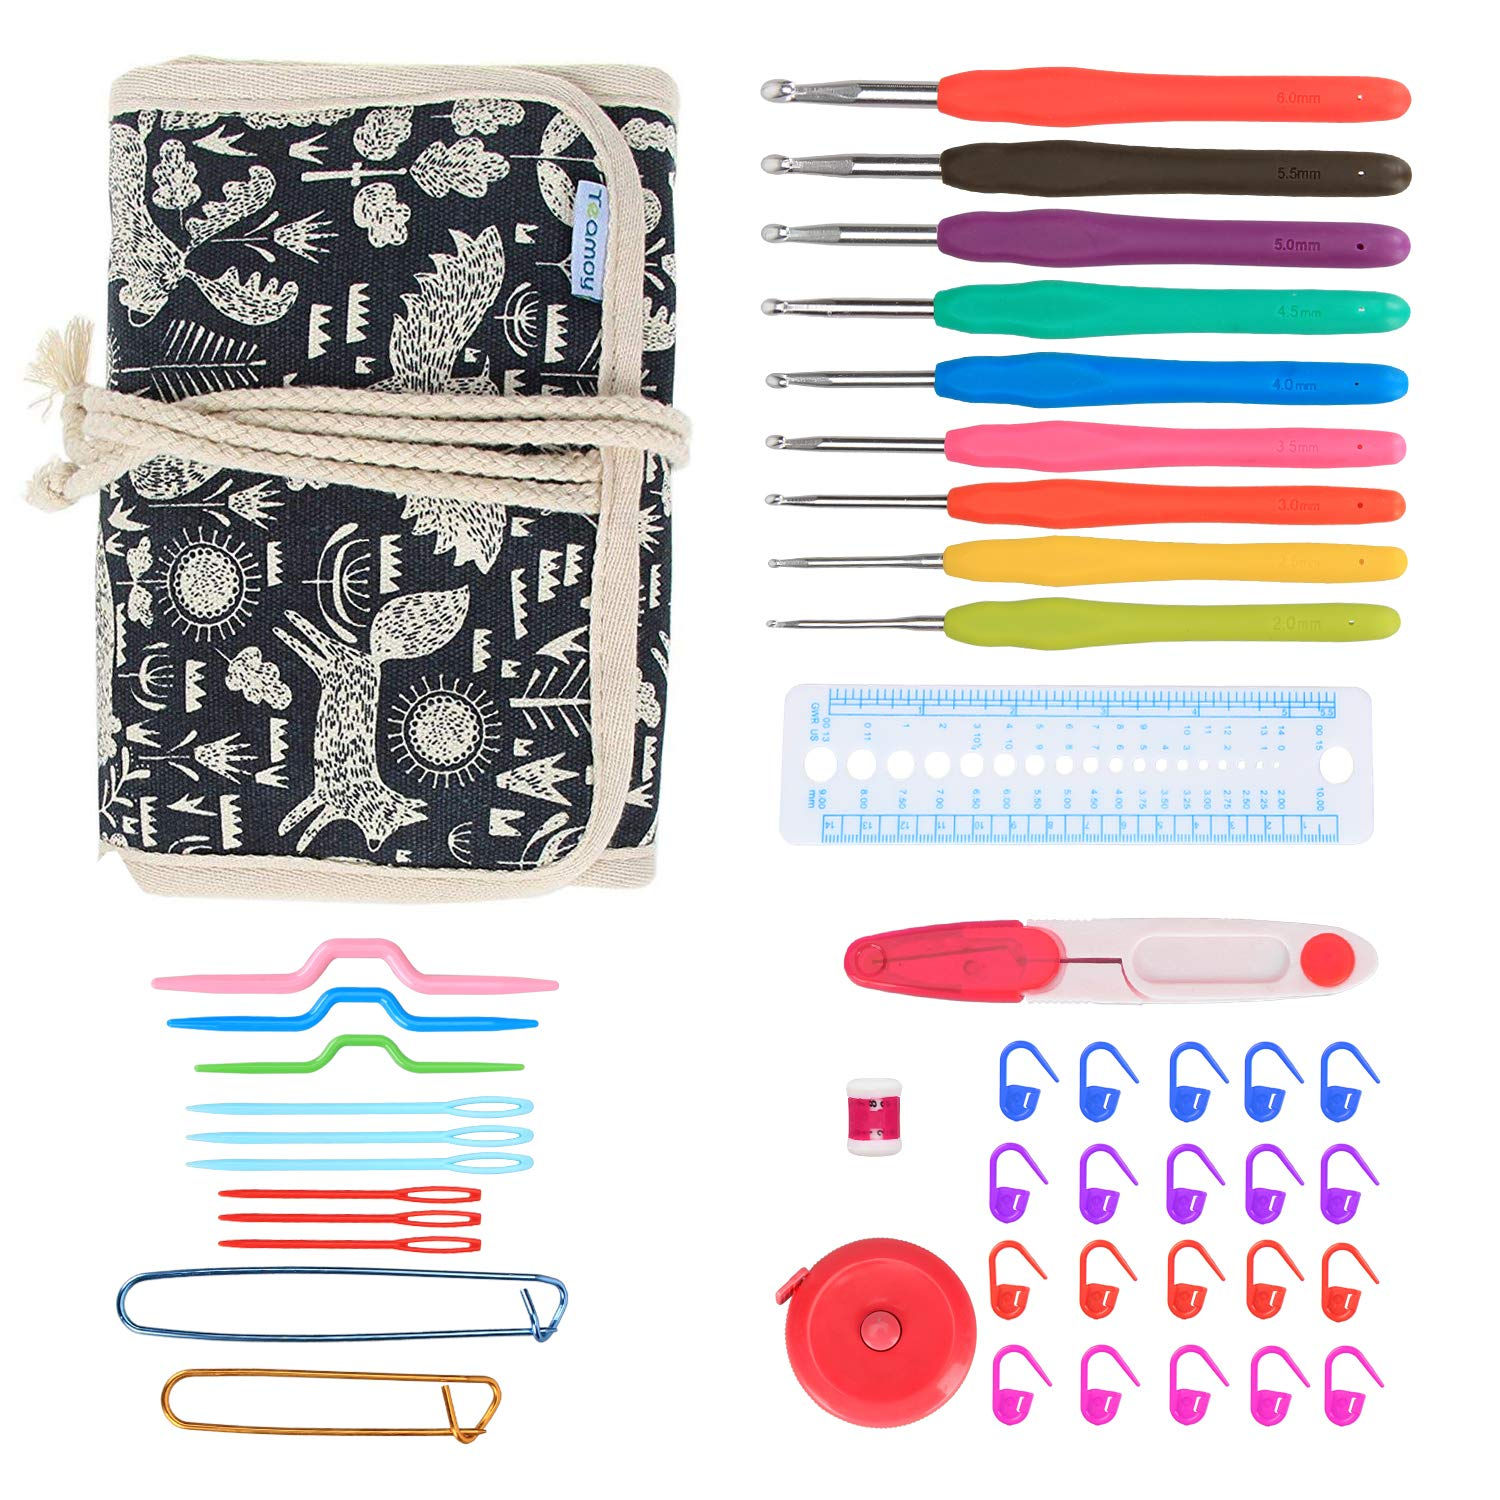 Teamoy Ergonomic Crochet Hooks Set, Crochet kit with 9pcs 2mm to 6mm Rubber Grip Needles and Accessories, Perfect Size for Quick Grab-and-Go